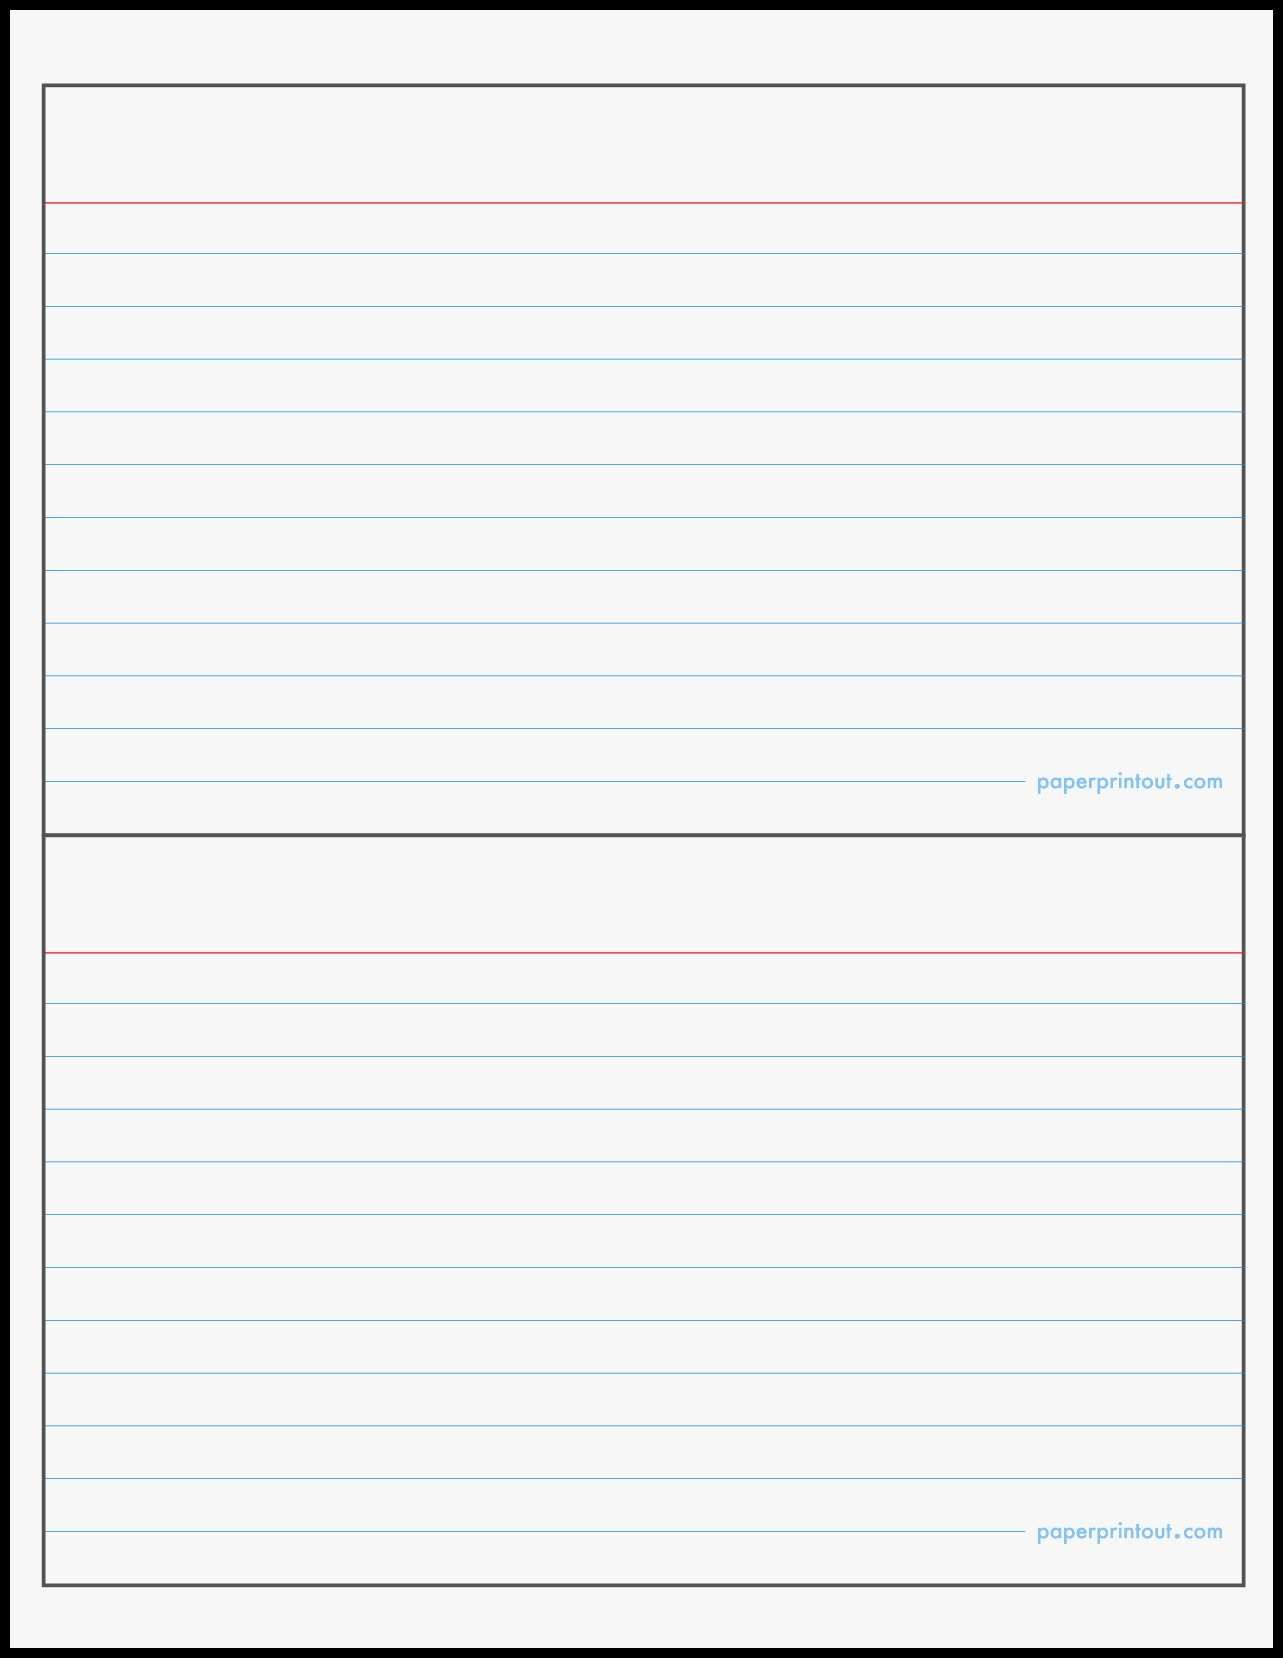 3x5 index card printable para sys within word template